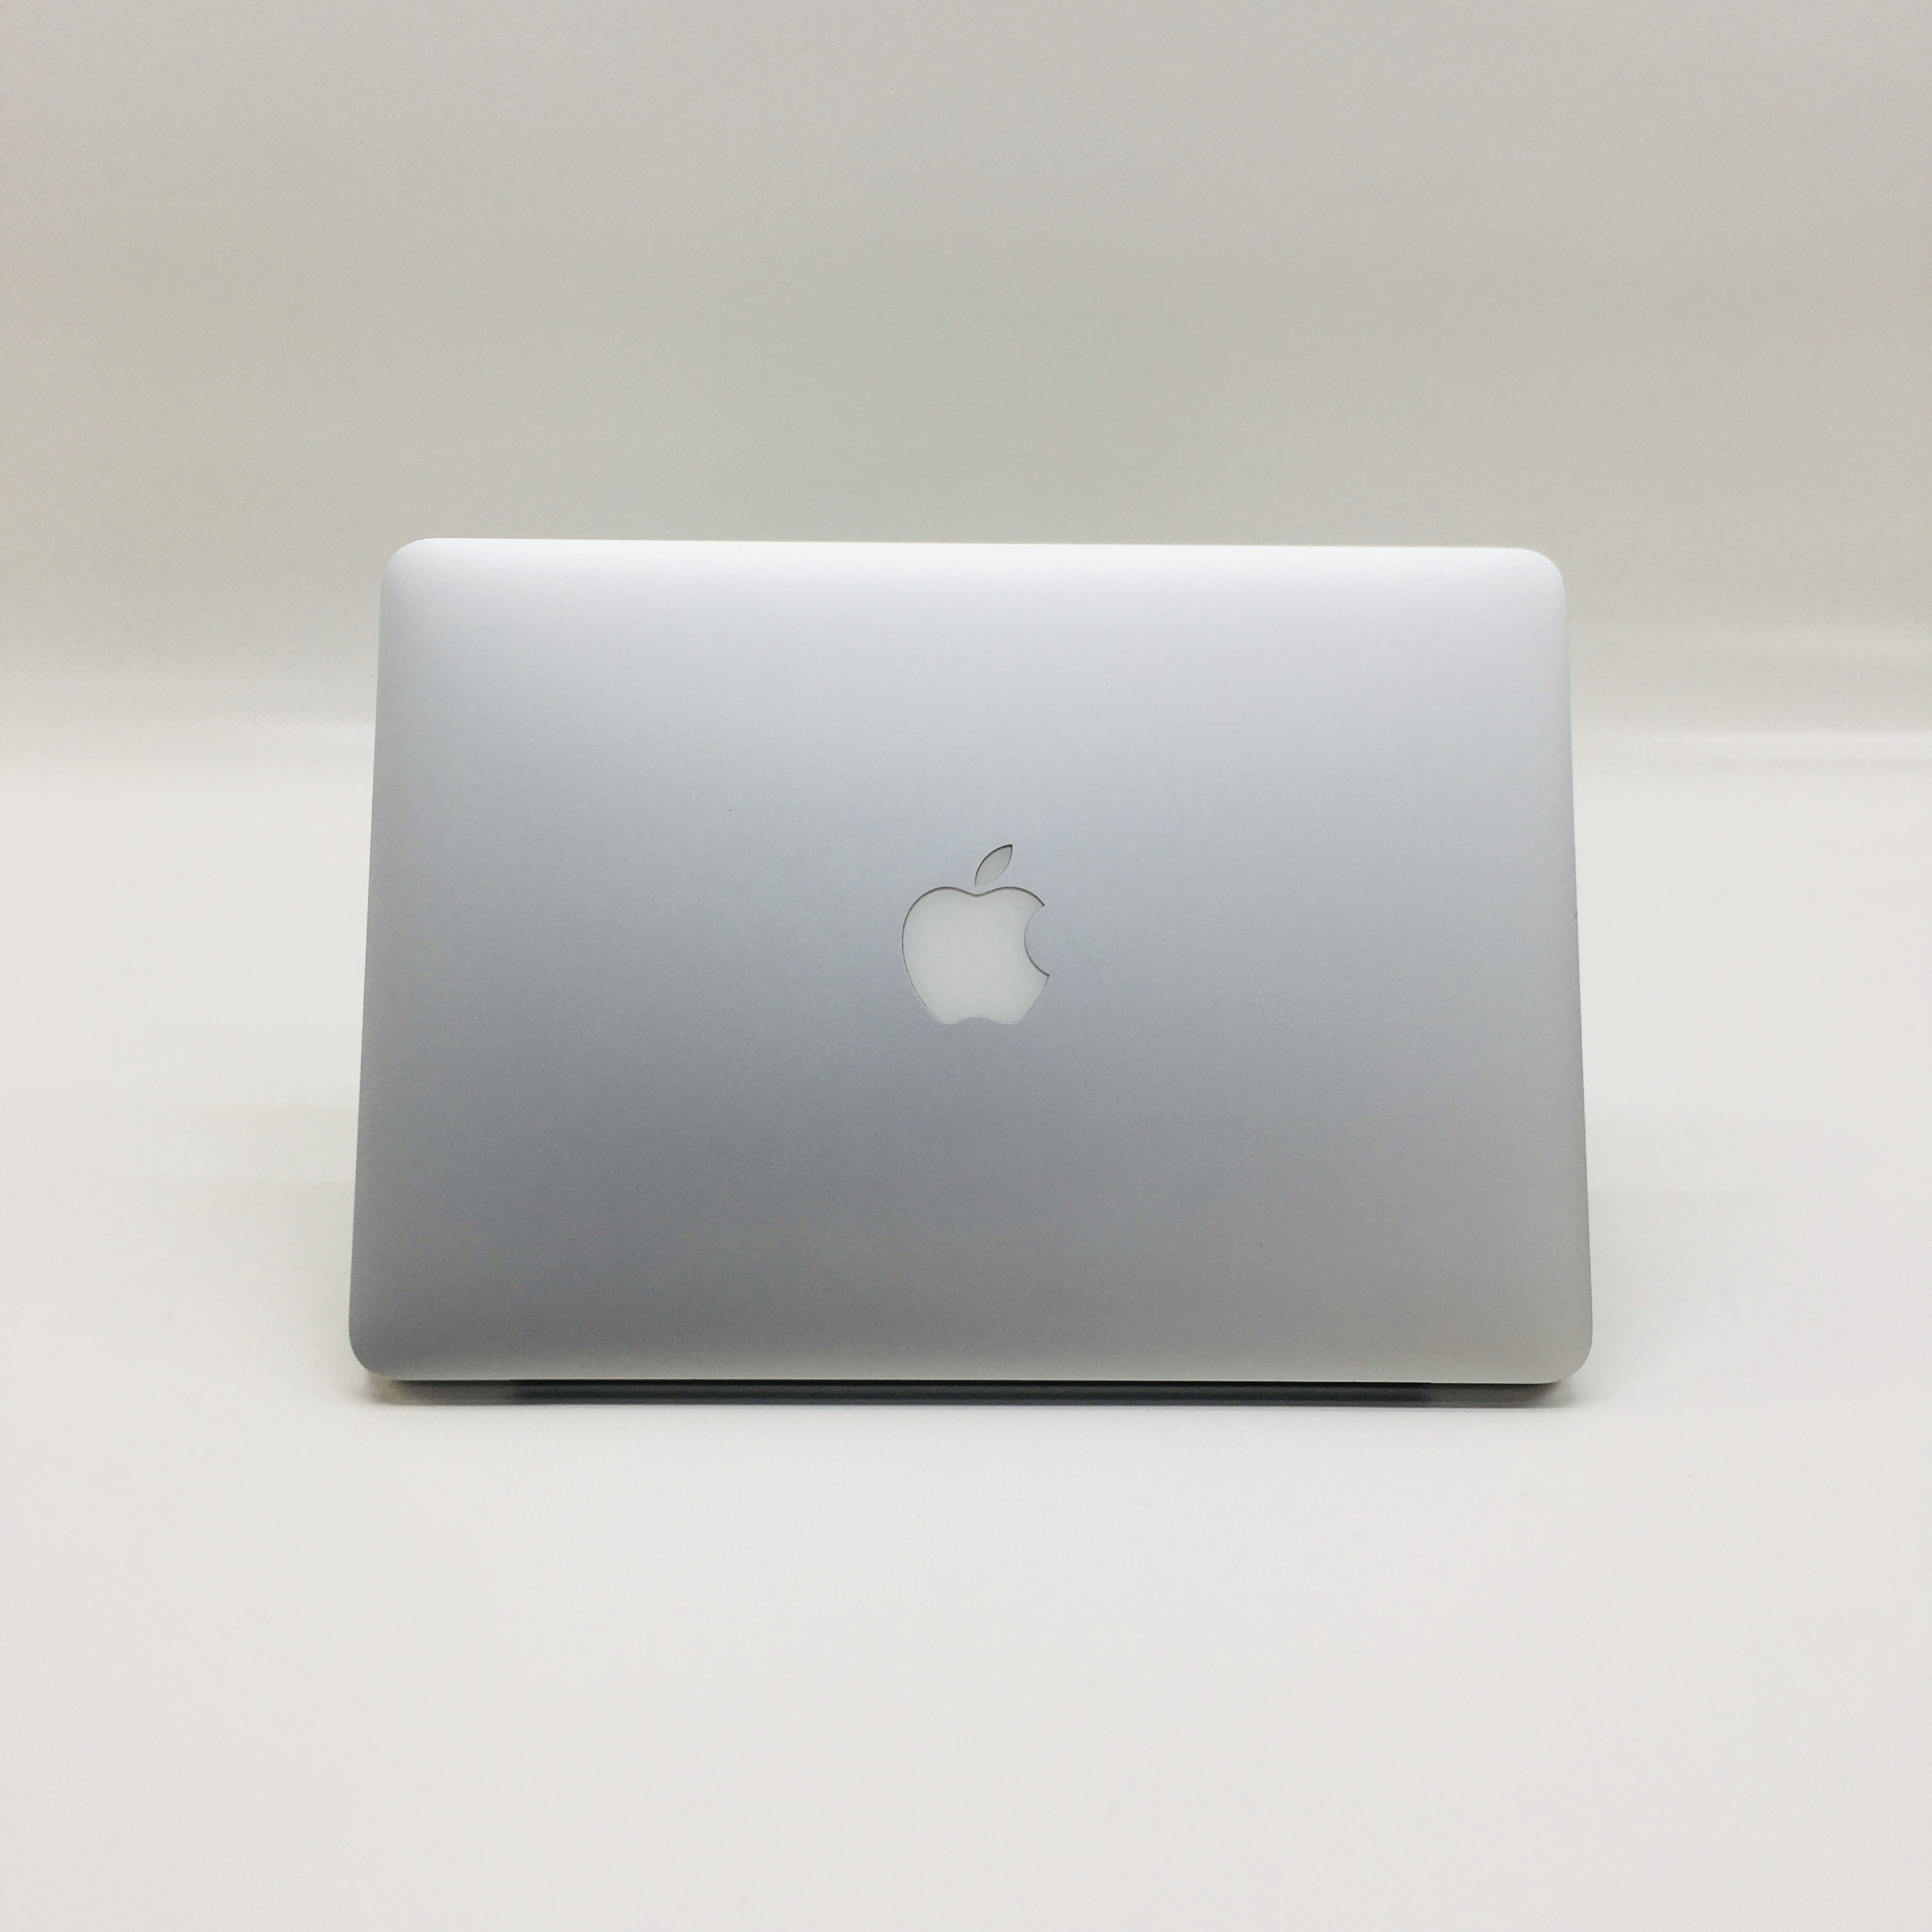 "MacBook Pro Retina 13"" Early 2015 (Intel Core i5 2.7 GHz 8 GB RAM 512 GB SSD), Intel Core i5 2.7 GHz, 8 GB RAM, 512 GB SSD, image 4"